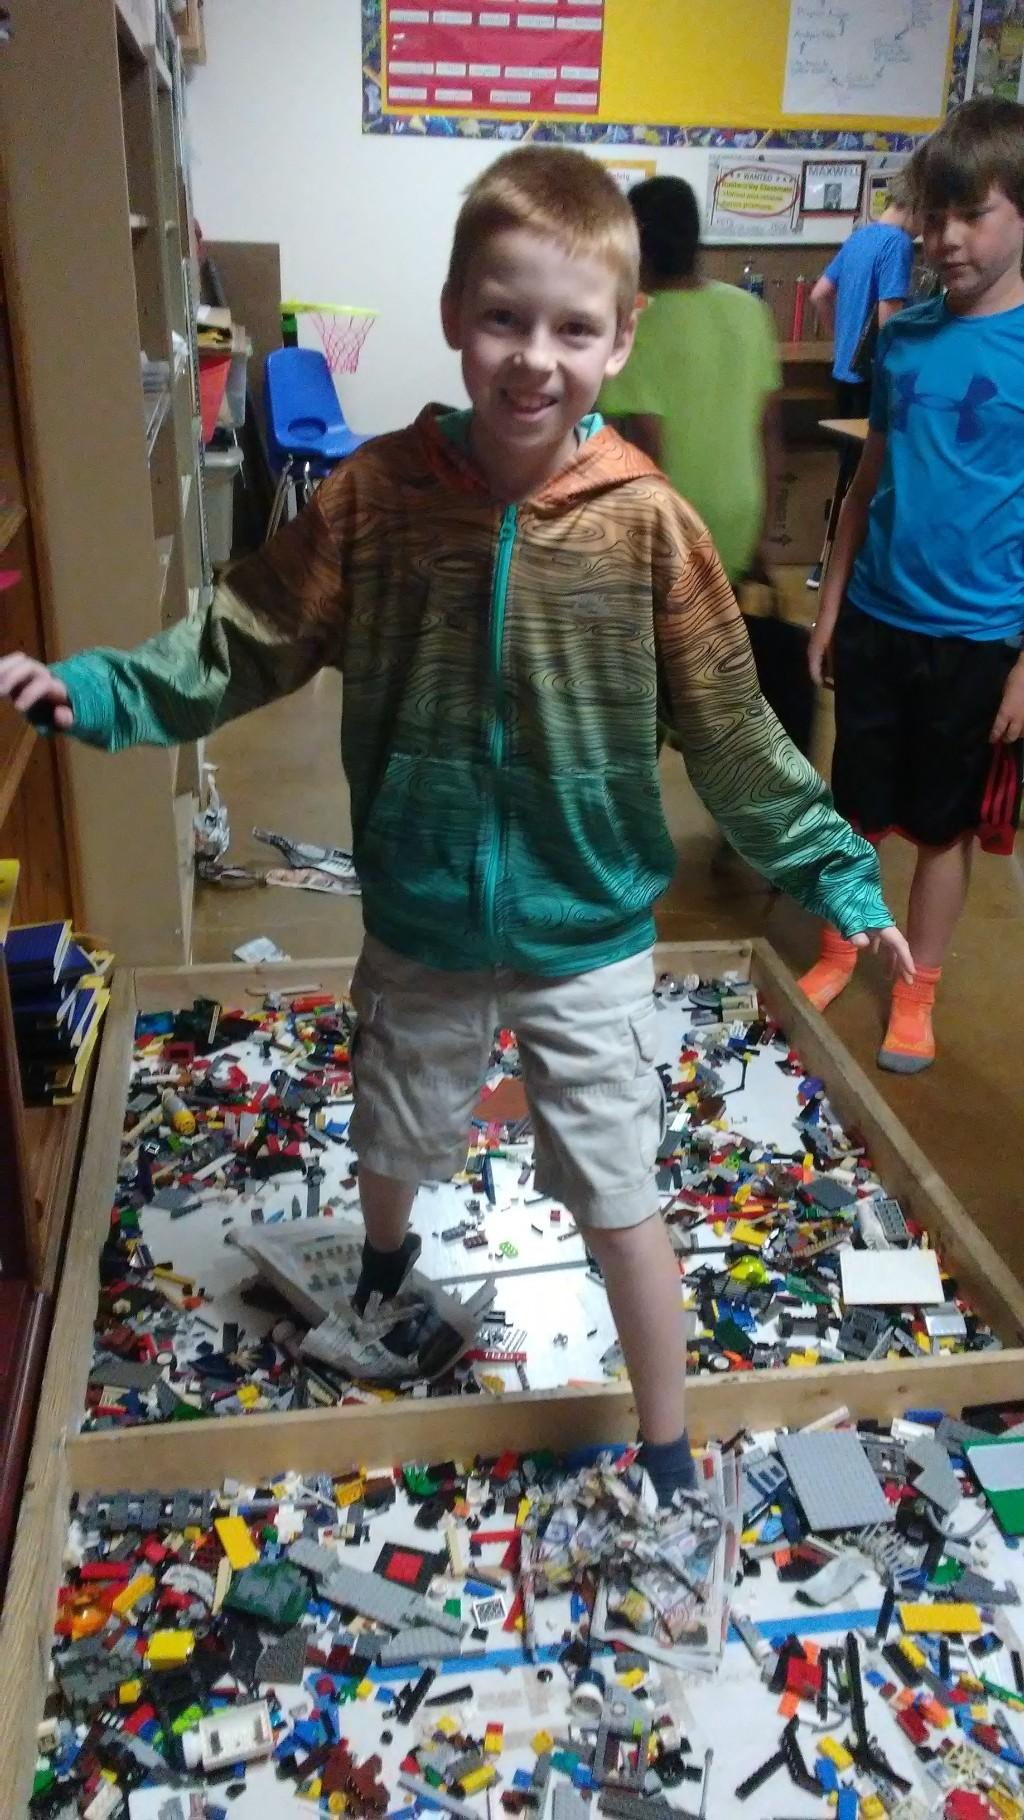 Fifth graders engineer newspaper shoes to protect their feet on a bed of legos.